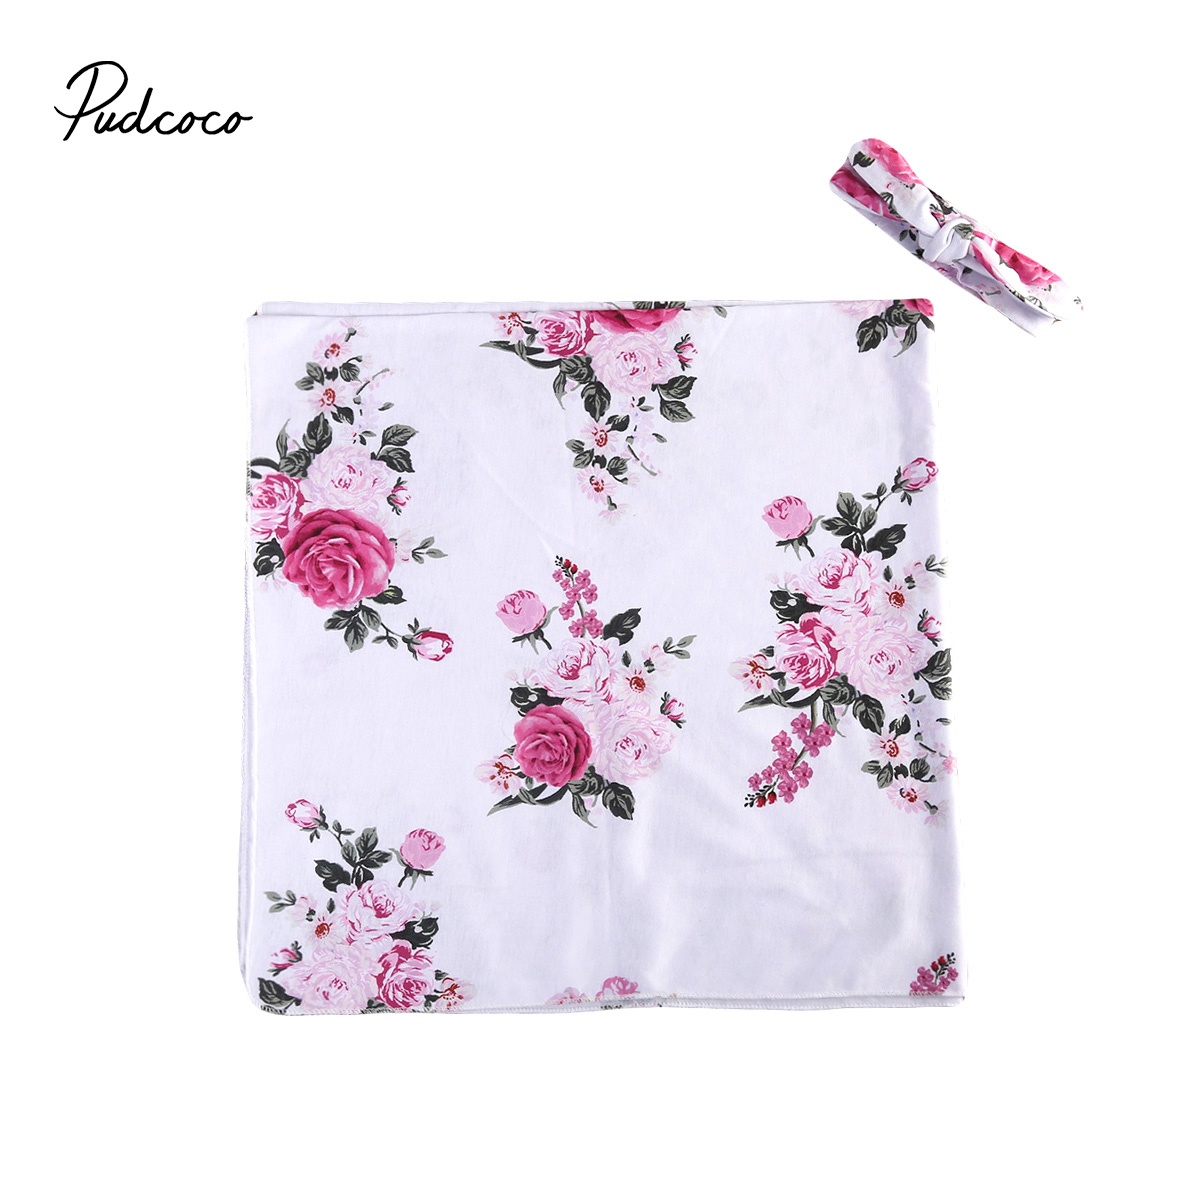 New Baby Boy Girl Receiving Blankets Soft Cotton Floral Newborn Baby Swaddle Blanket Bath Towel Baby Girls pink floral towels